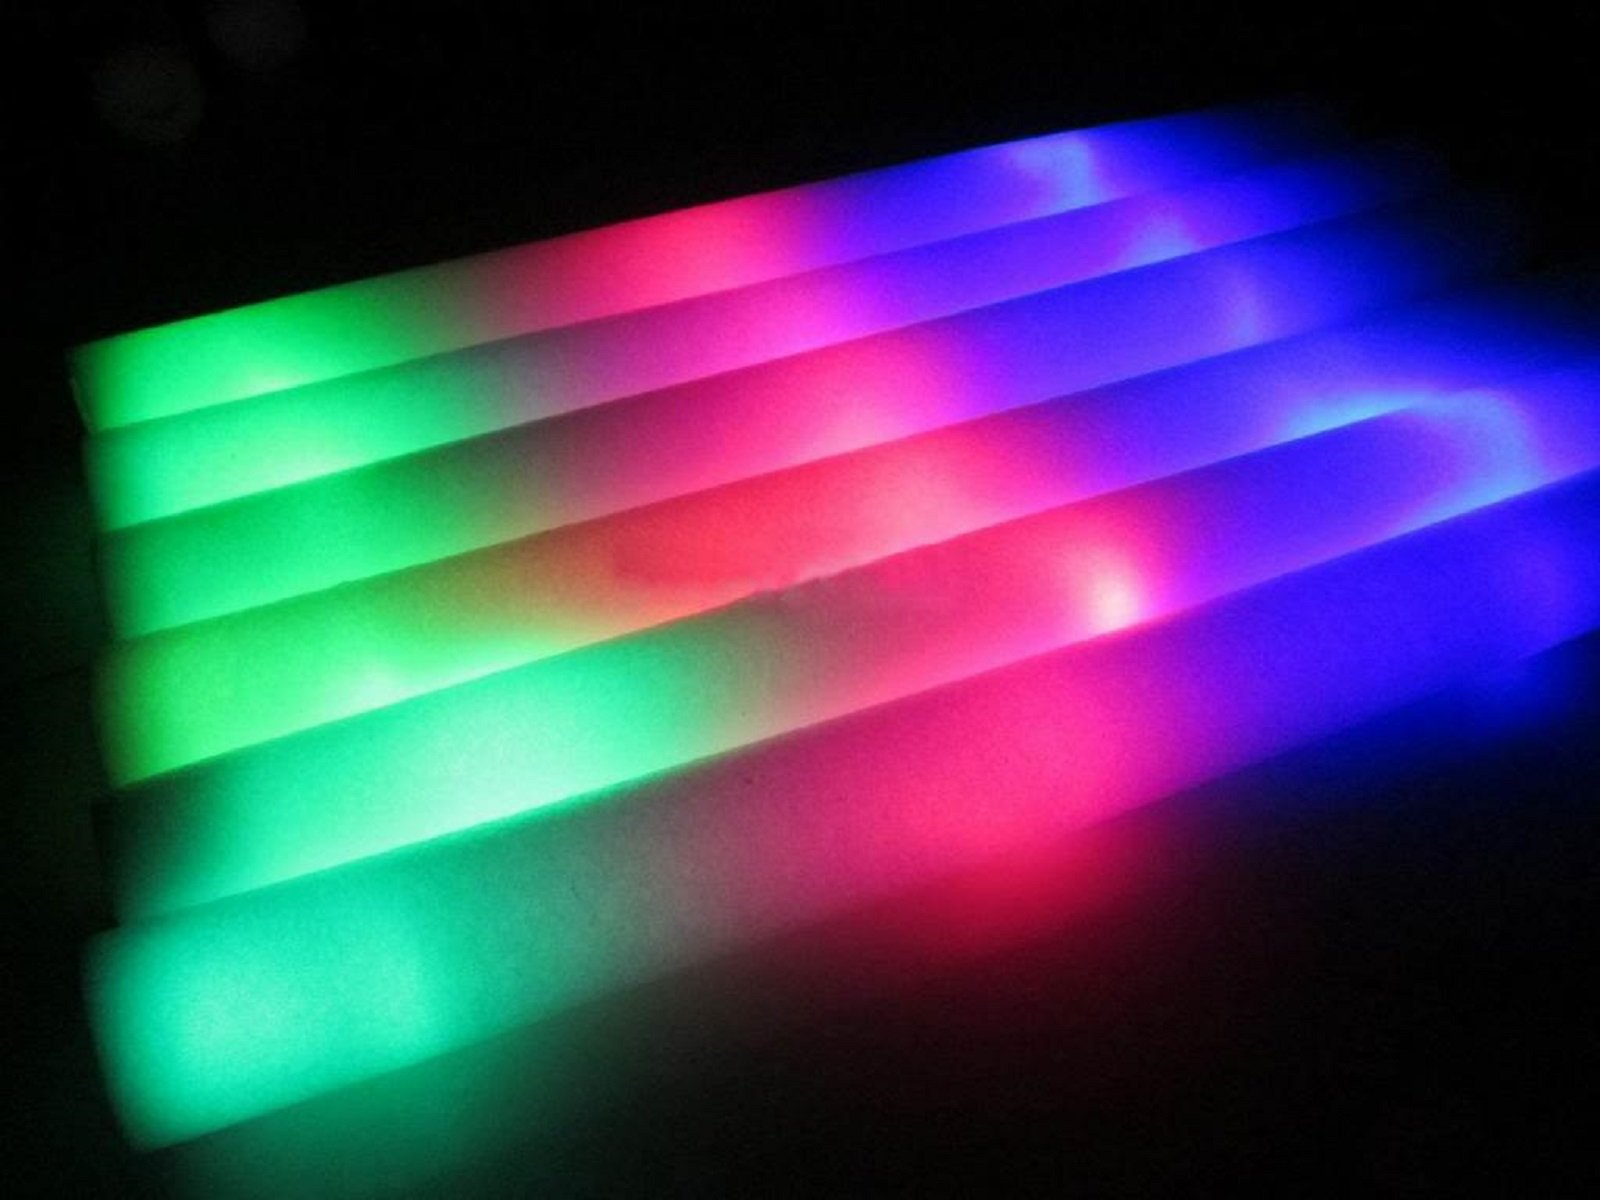 100 Pack of 18 Inch Multi Color Flashing Glow LED Foam Sticks, Wands, Batons - 3 Modes Multi-Color - Party Flashing Light DJ Wands, Concert, Festivals, Birthdays, Party Supplies, Weddings, Give Aways by JY Premium (Image #6)